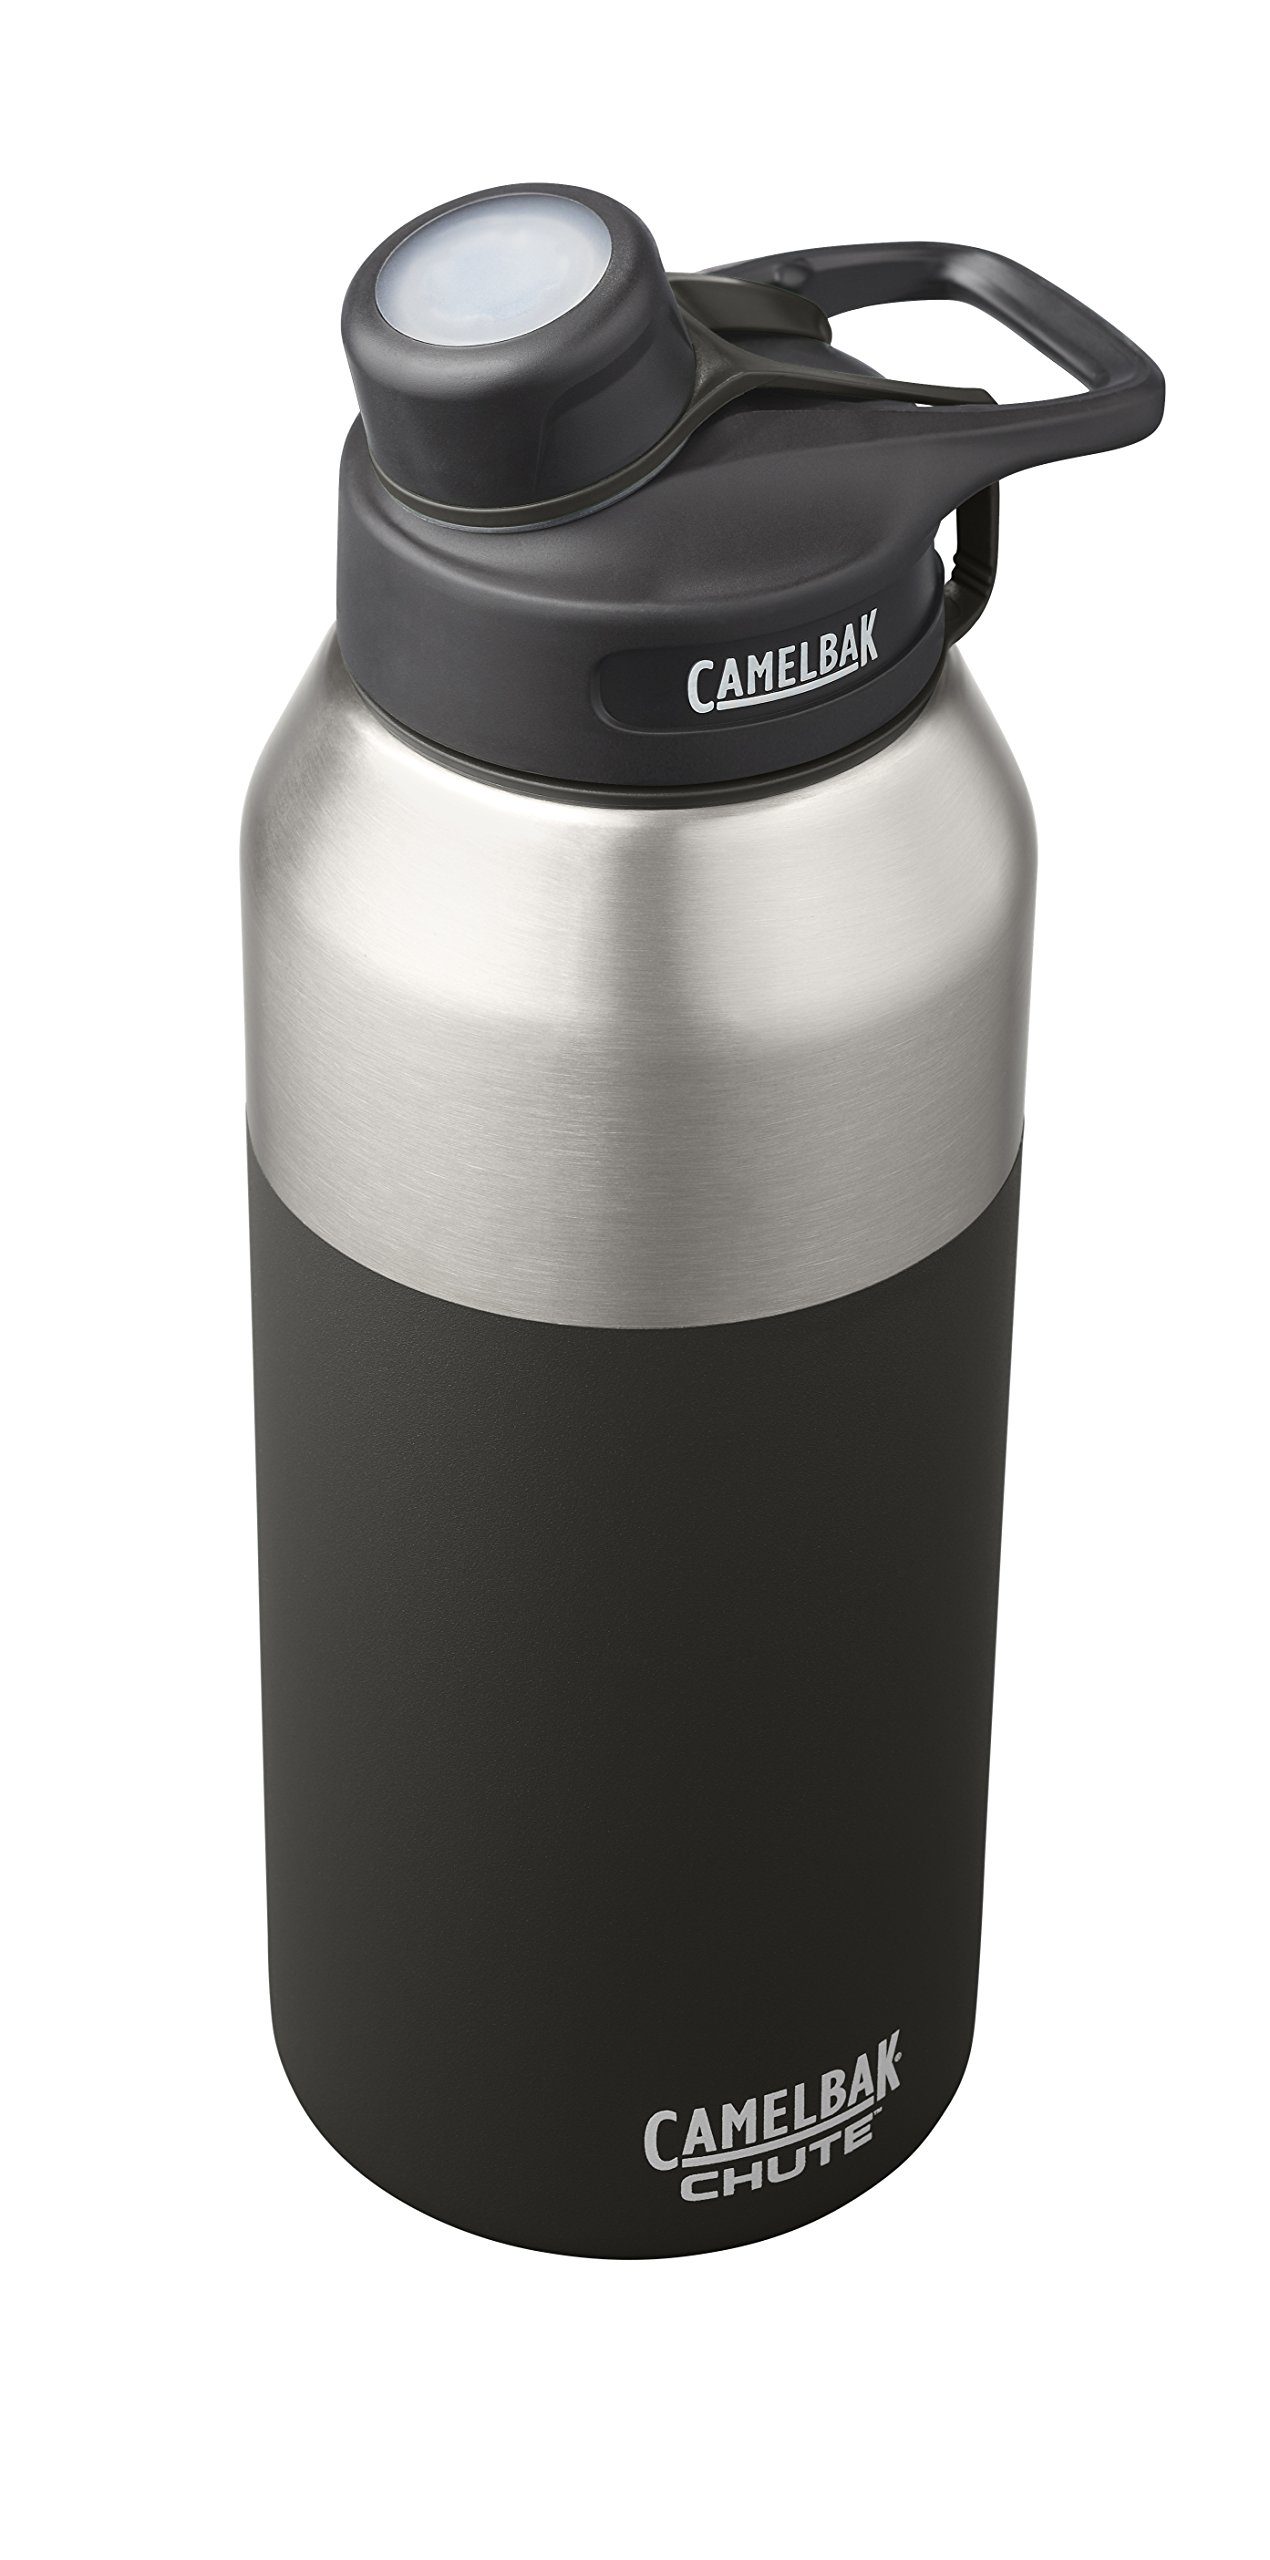 CamelBak 53868 Chute Vacuum Insulated Stainless Water Bottle, 40 oz, Jet by CamelBak (Image #2)